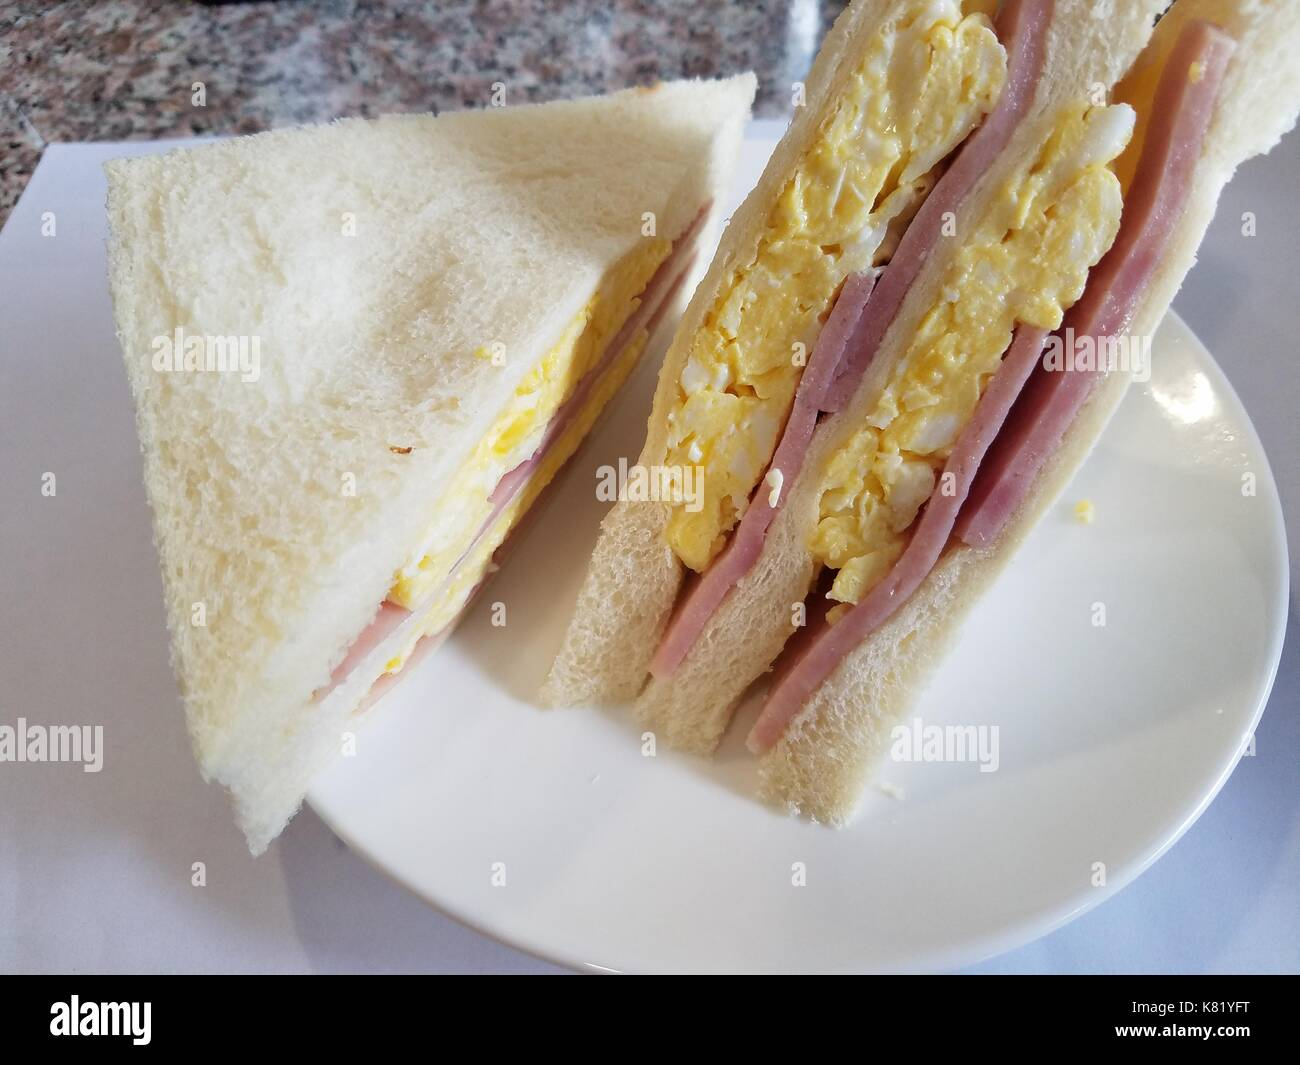 Delicious Cantonese style egg and ham sandwich, ate at Los Angeles, California, U.S.a. - Stock Image